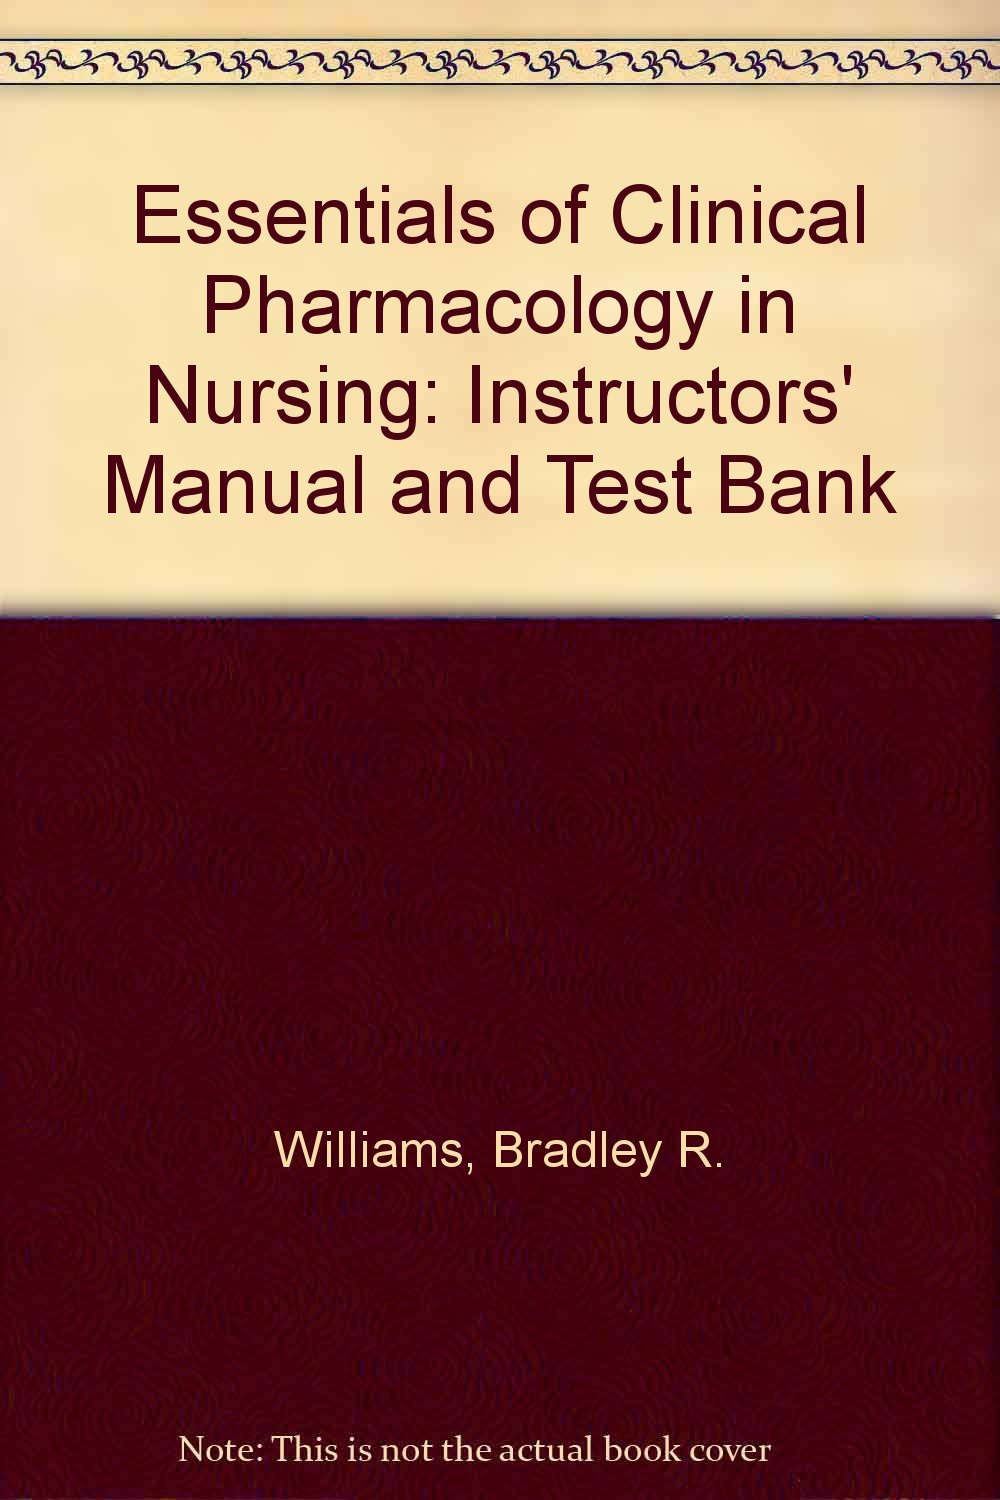 Essentials of Clinical Pharmacology in Nursing: Instructors' Manual and Test Bank